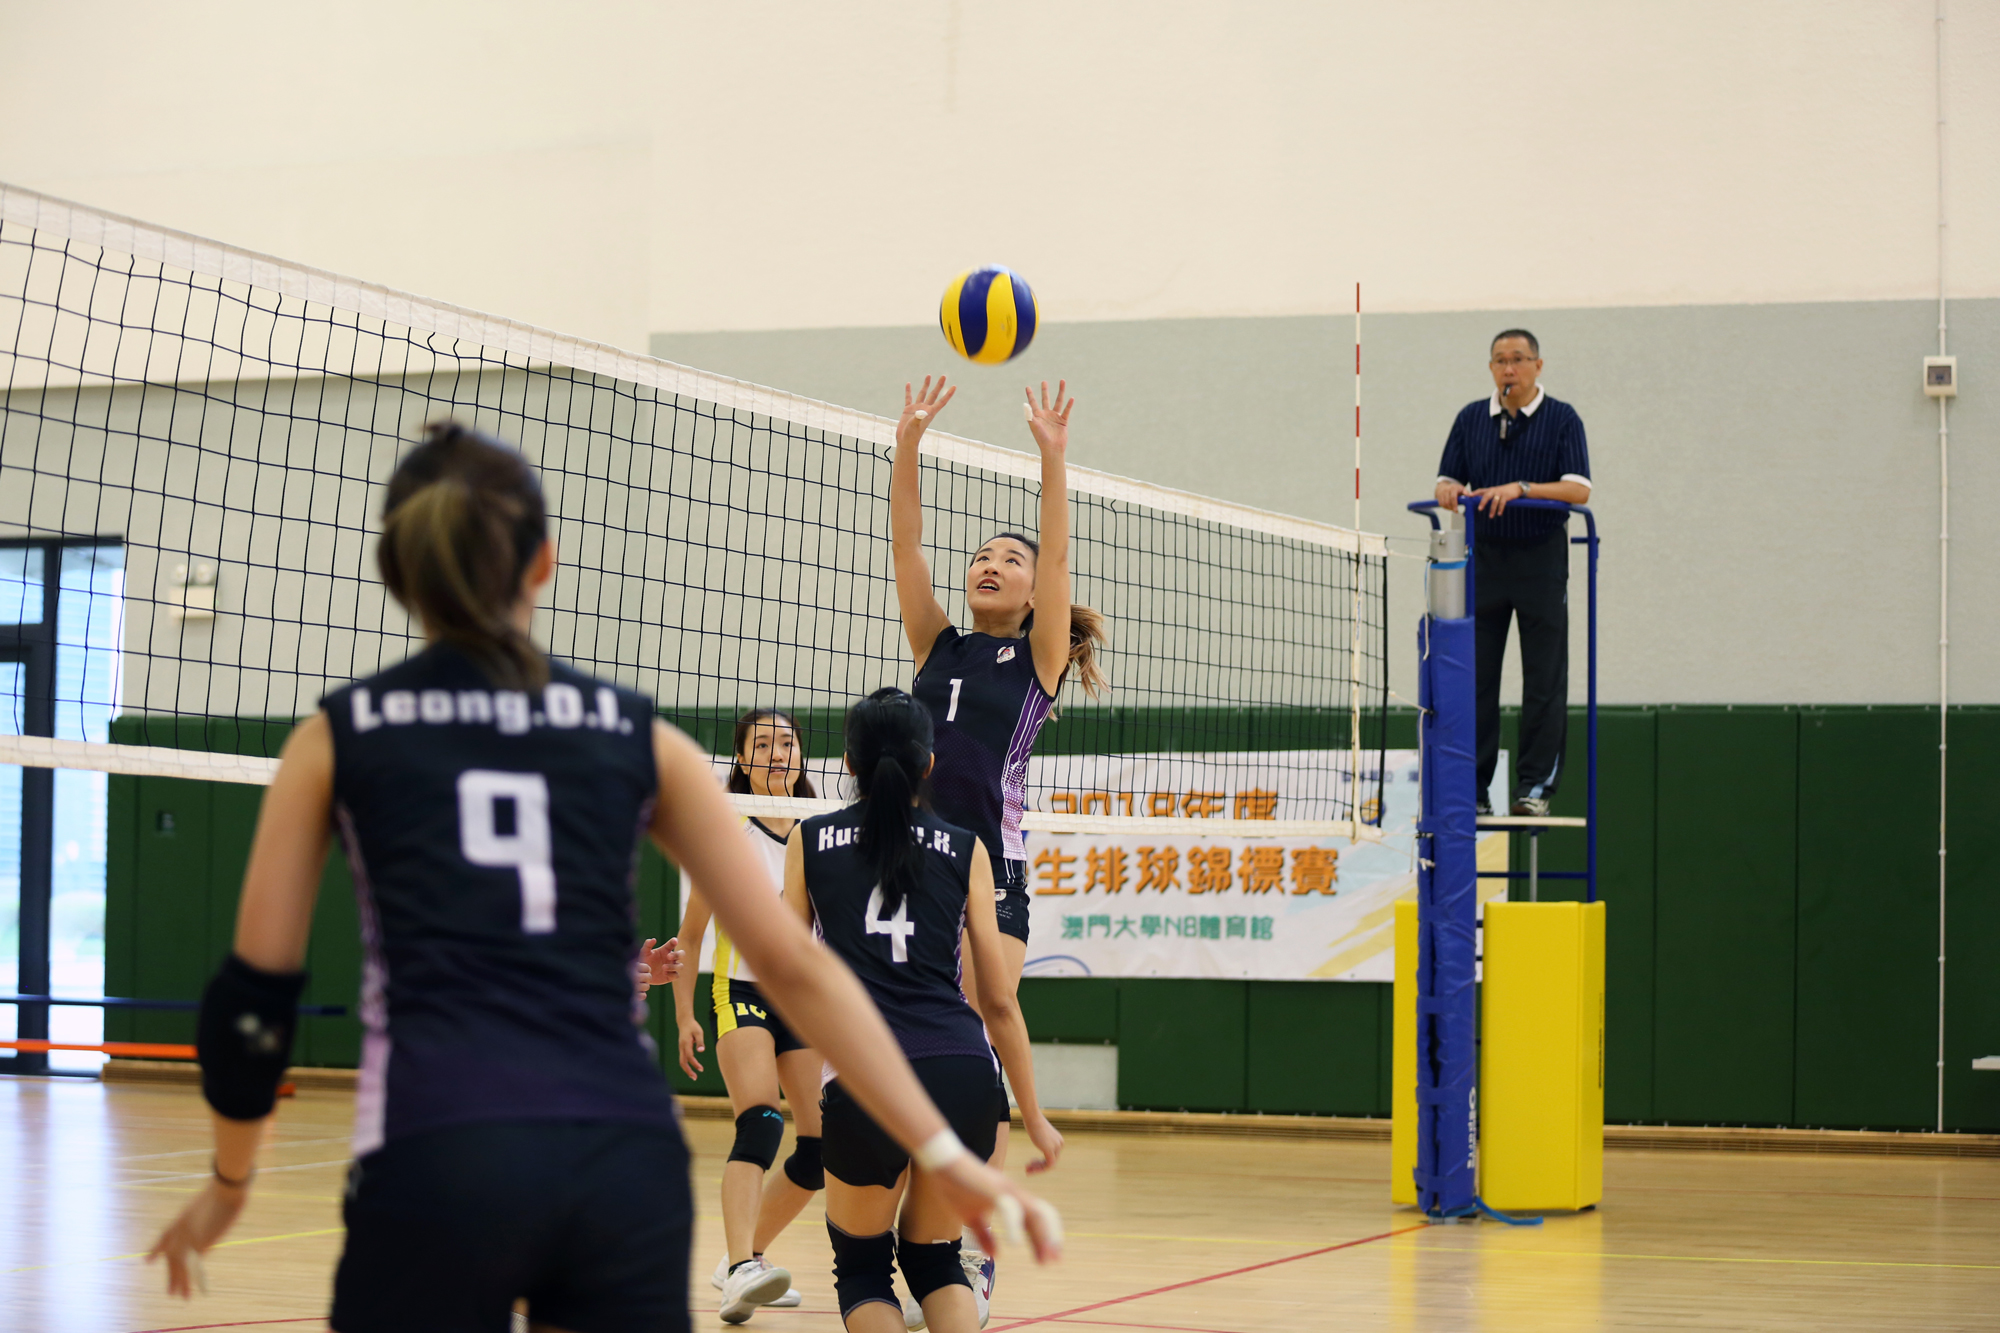 UM Women's Volleyball Team in the competition